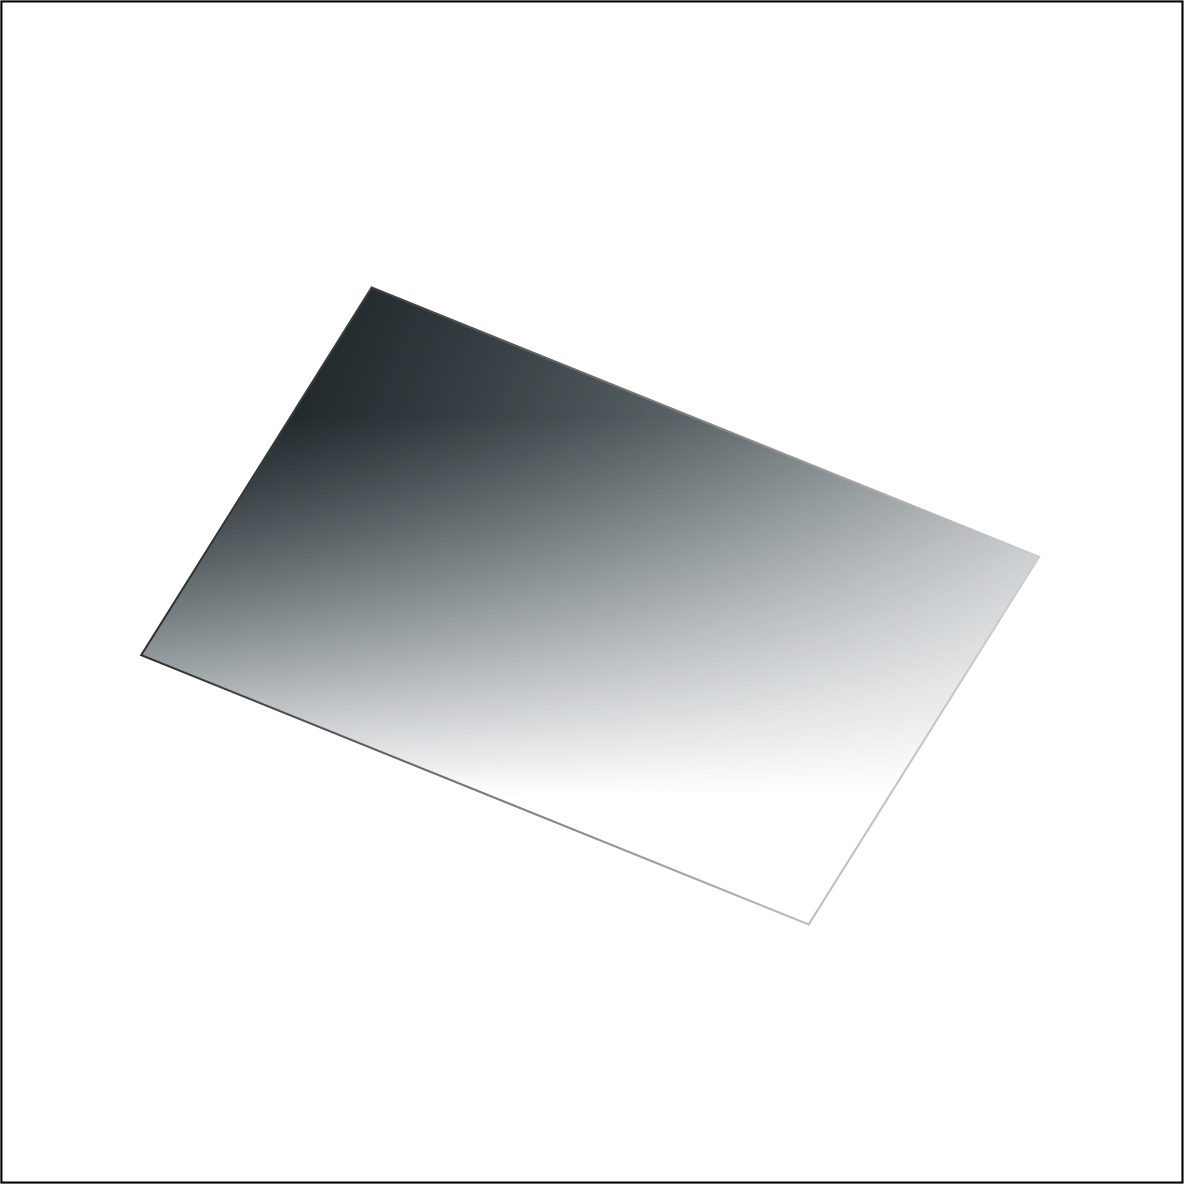 Tiffen ND 9 graduated Filter by Accord Equips